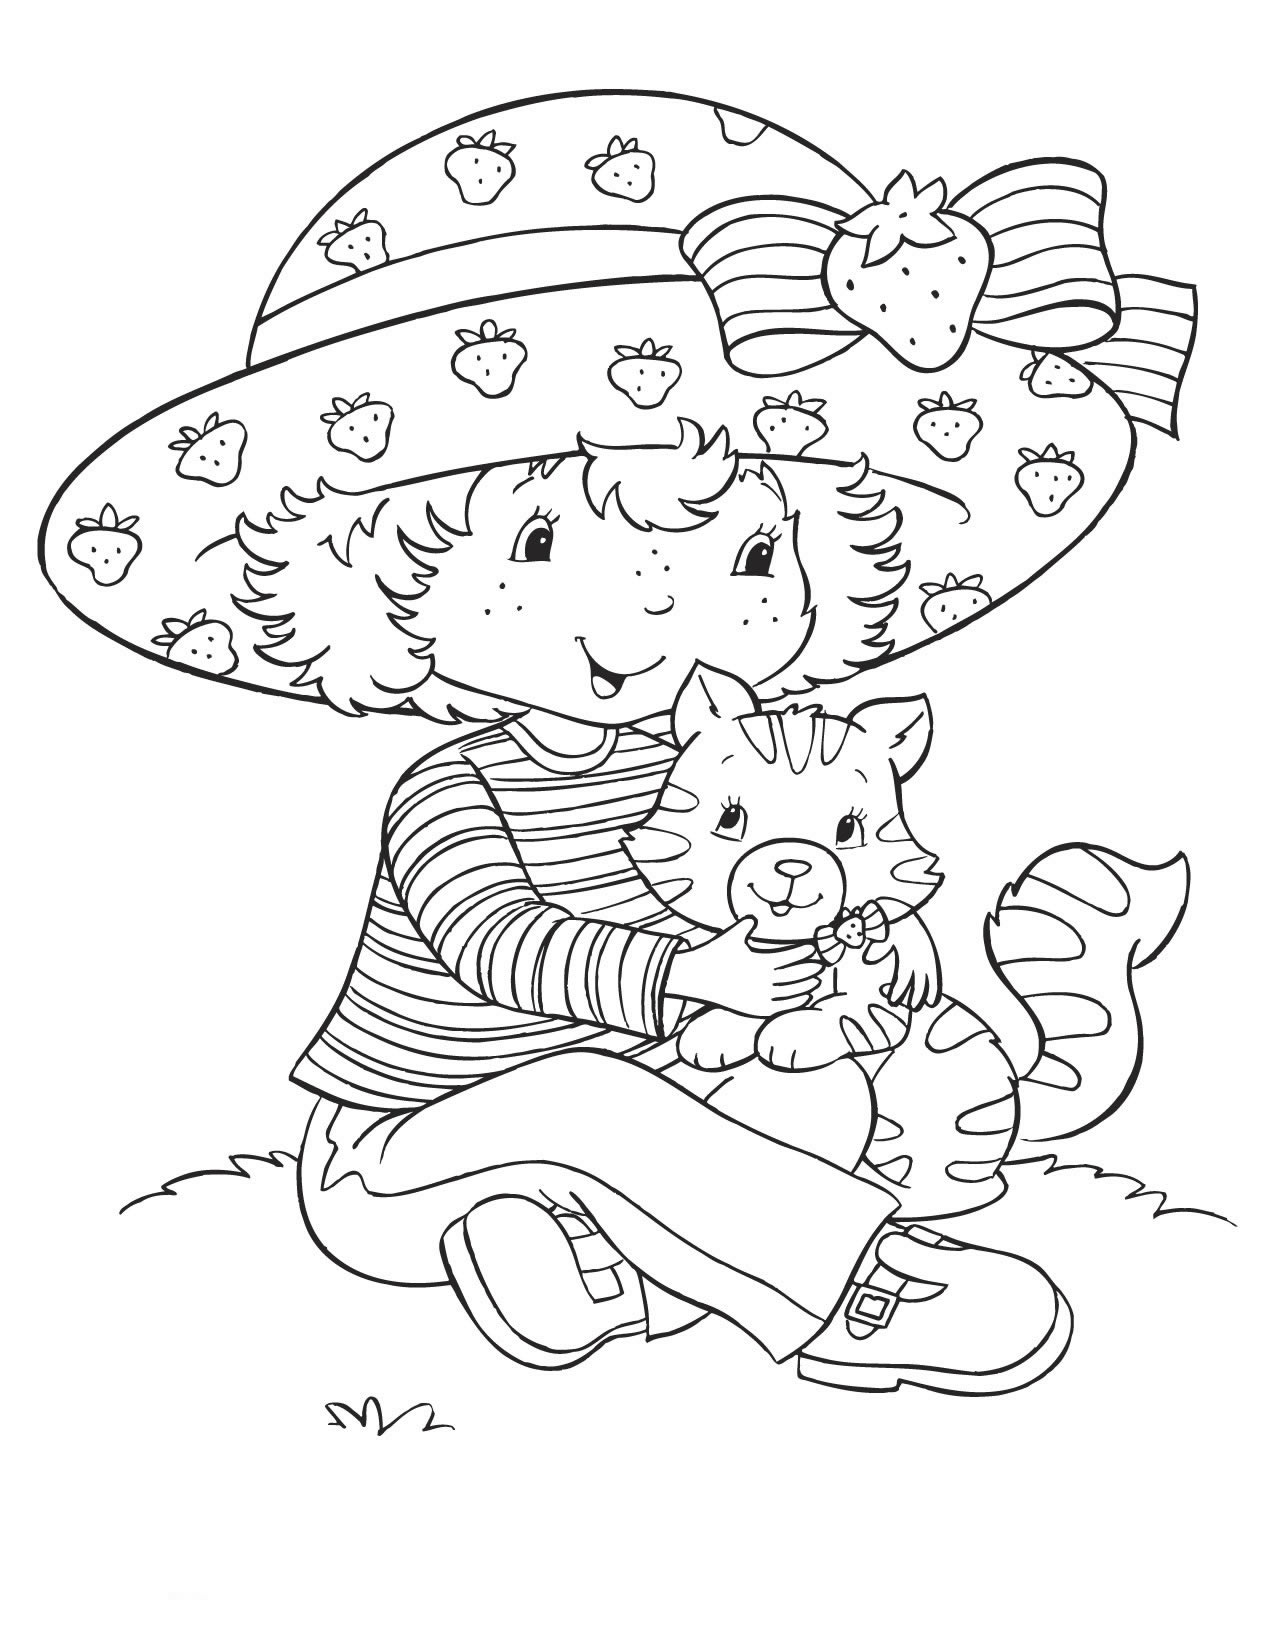 strawberry coloring pages for kids - photo#33